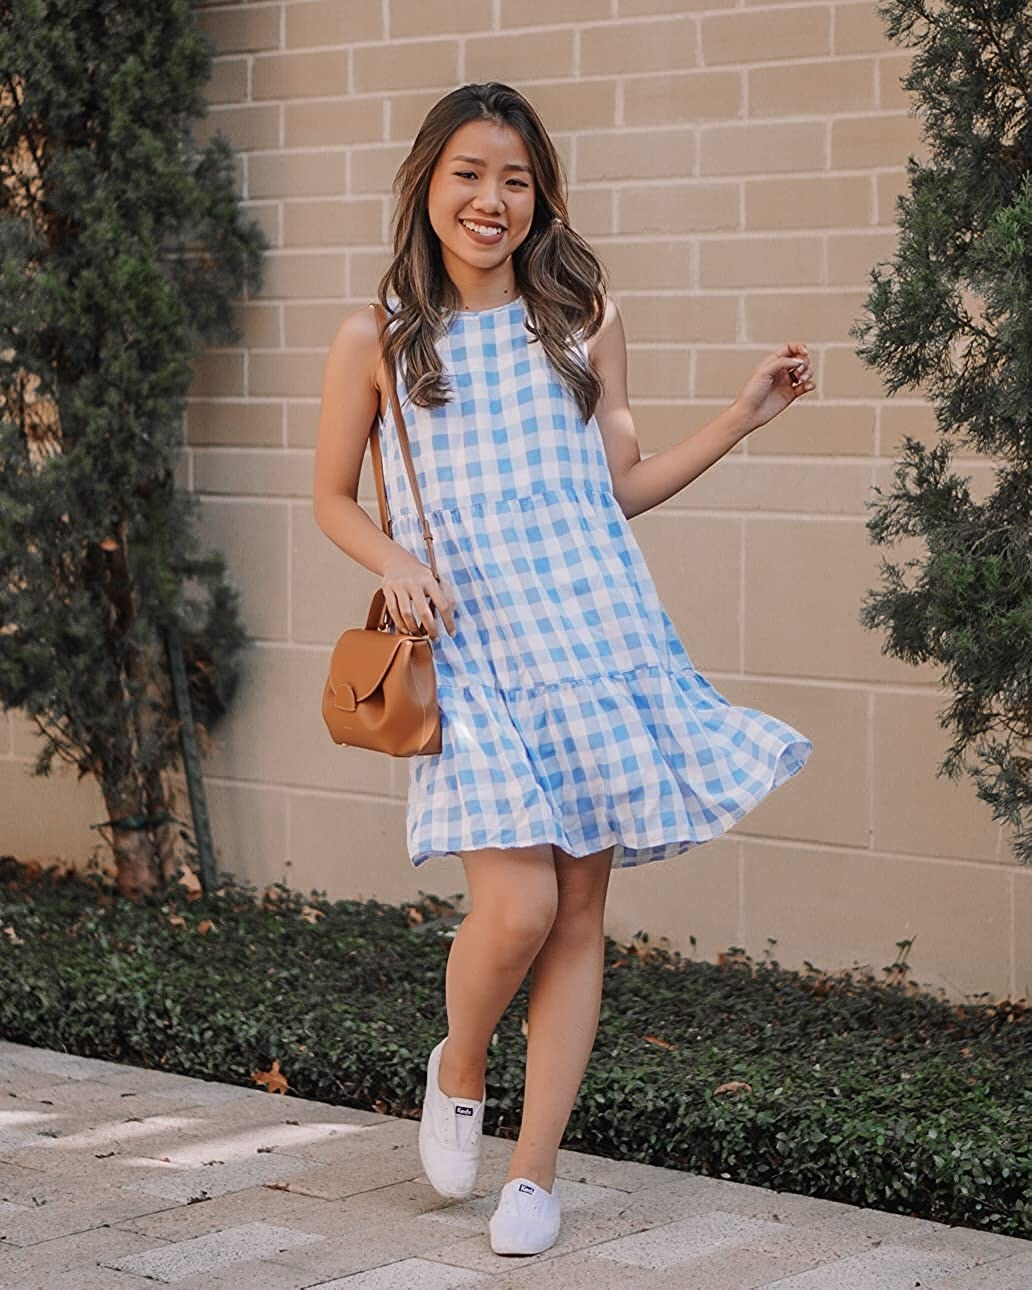 A model in the above-the-knee light blue and white dress